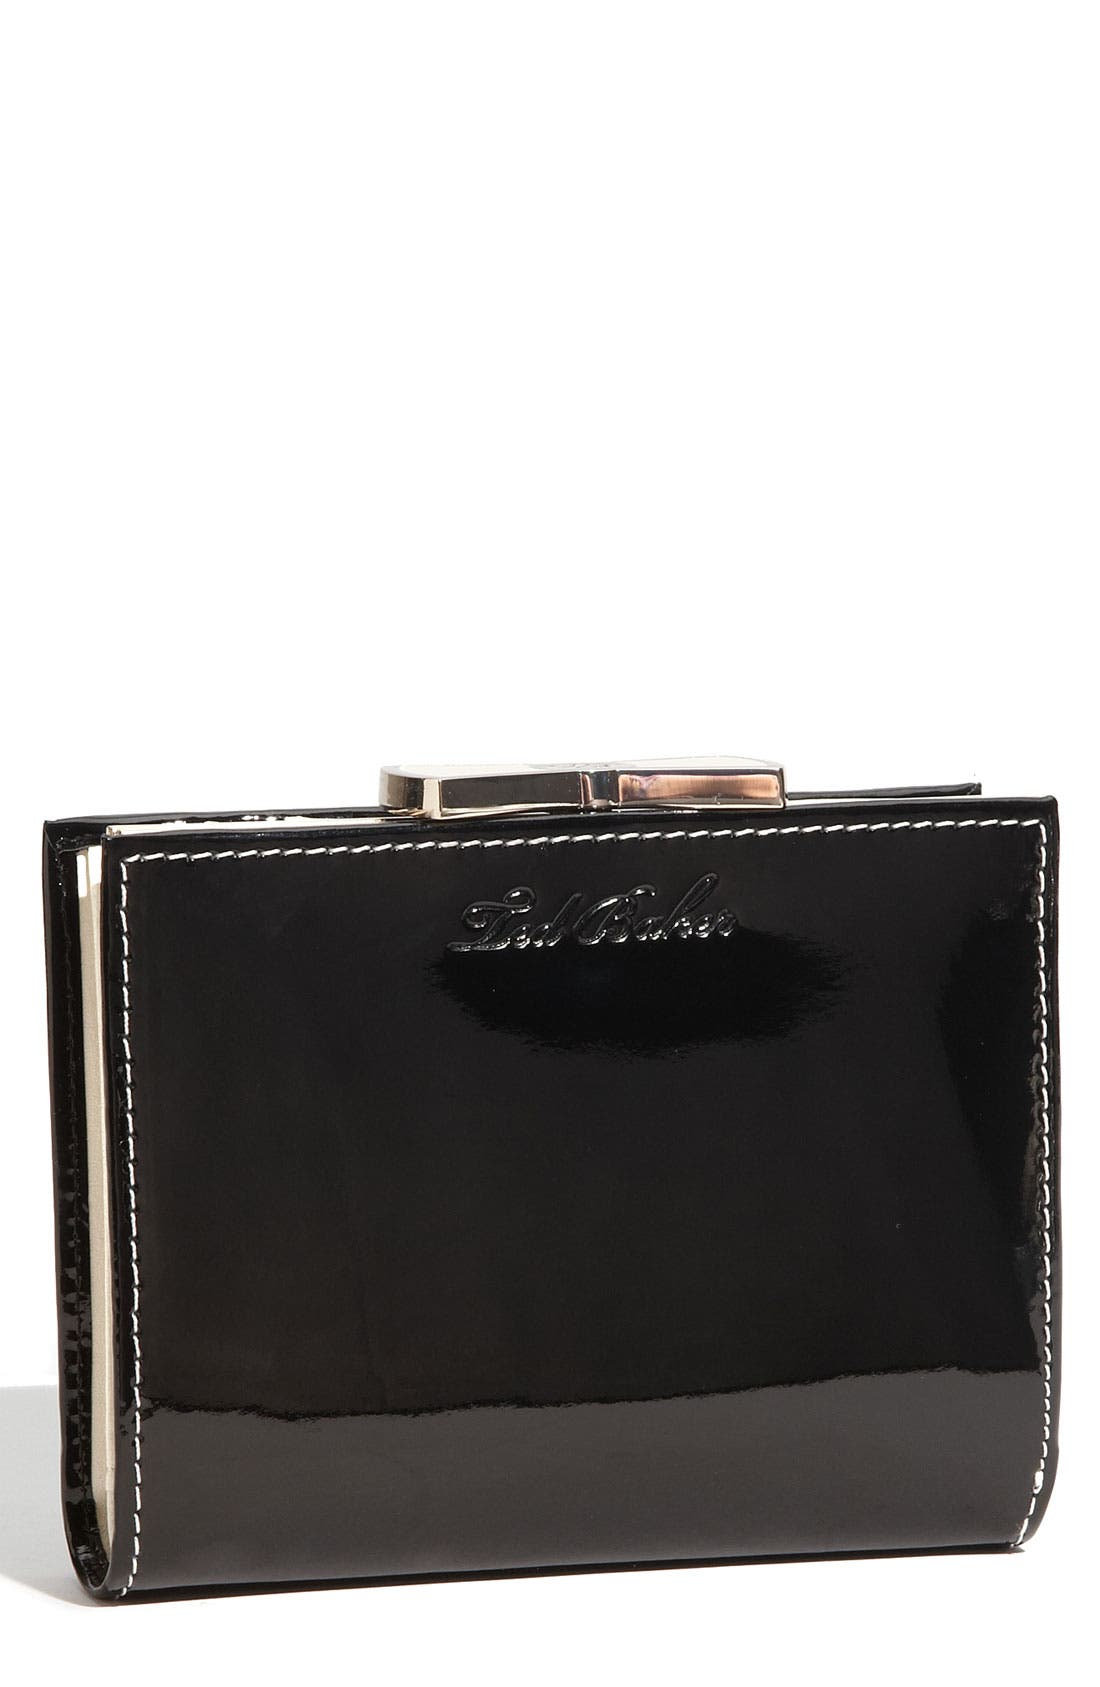 Main Image - Ted Baker London 'Bow Clasp' French Wallet